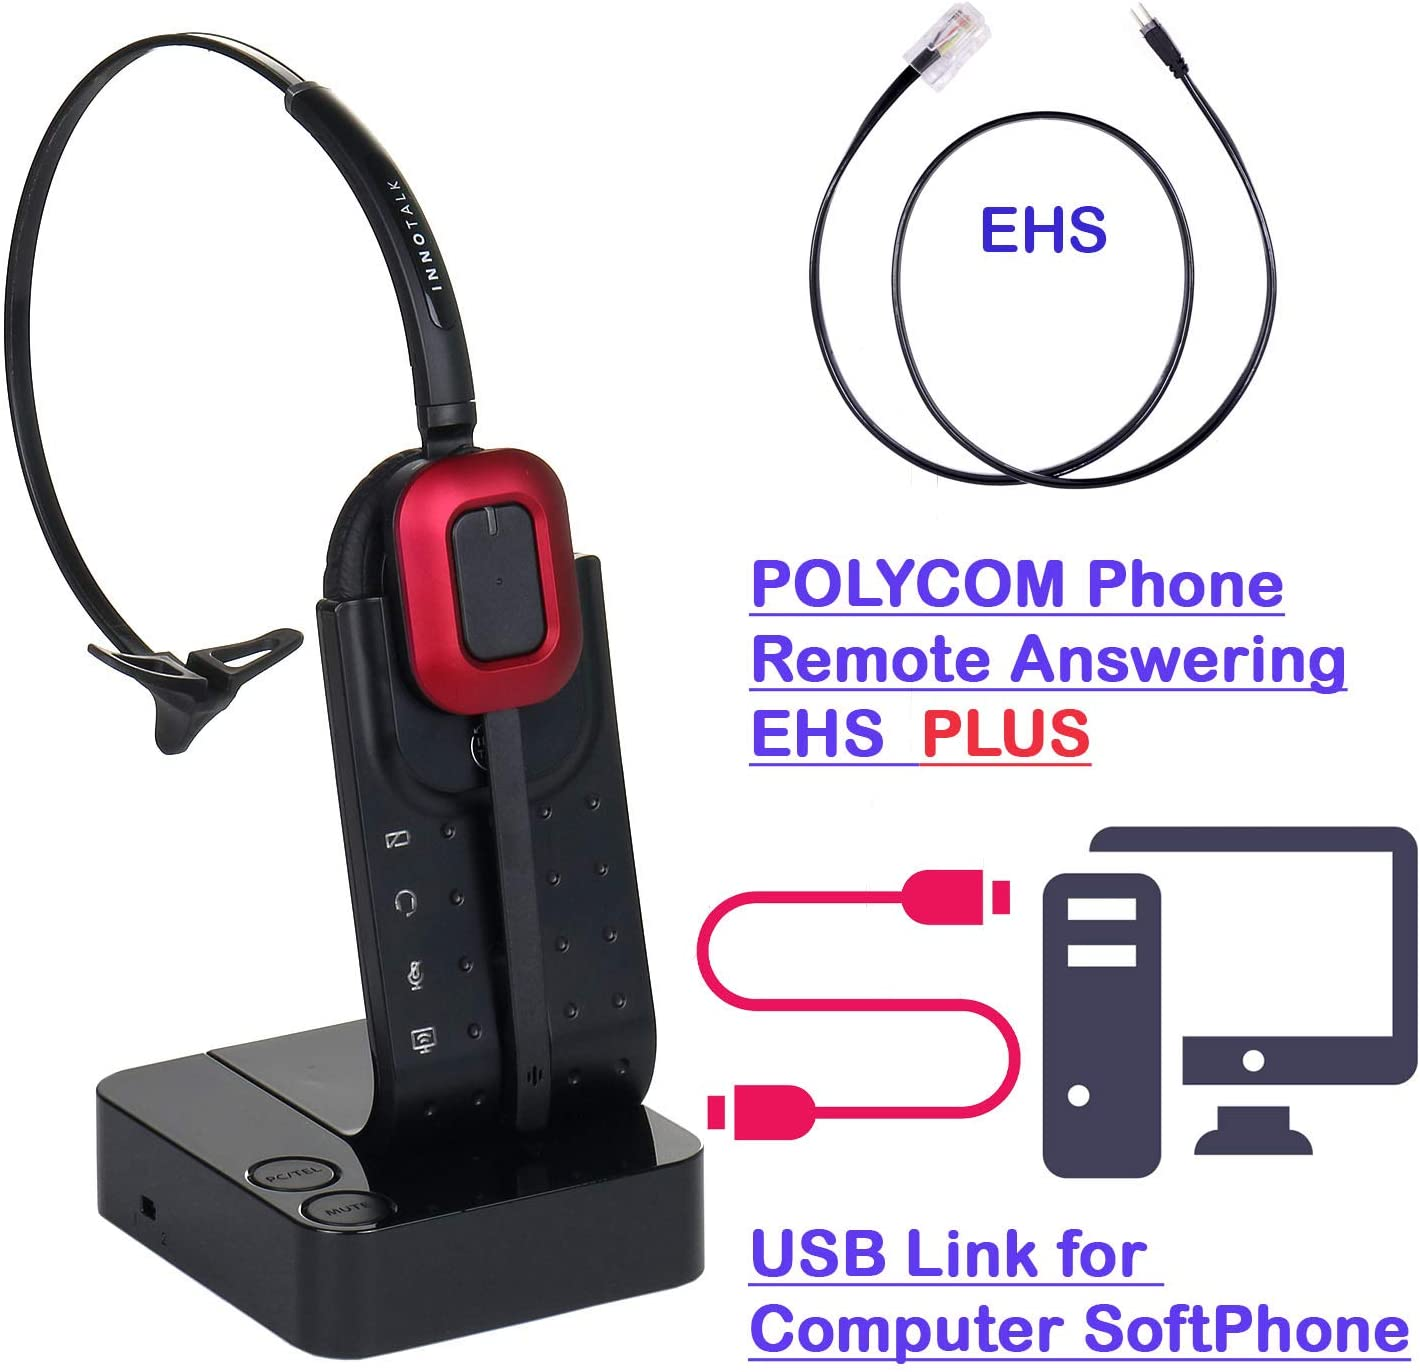 Computer and Polycom VVX300, VVX310, VVX400, VVX410, VVX500, VVX600, VVX1500 Compatible Wireless Headset